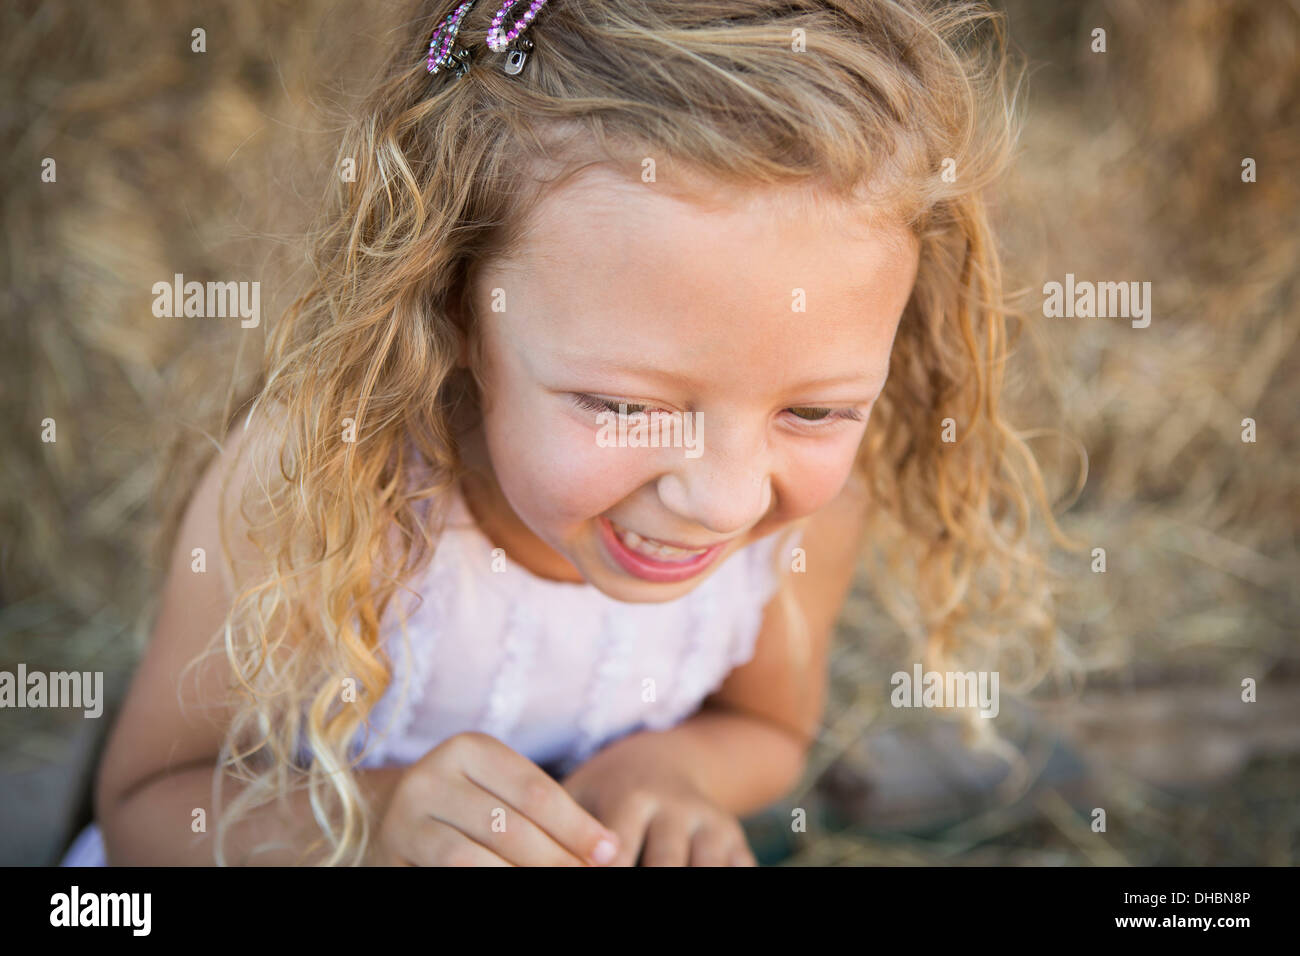 A young girl in a barn laughing. - Stock Image